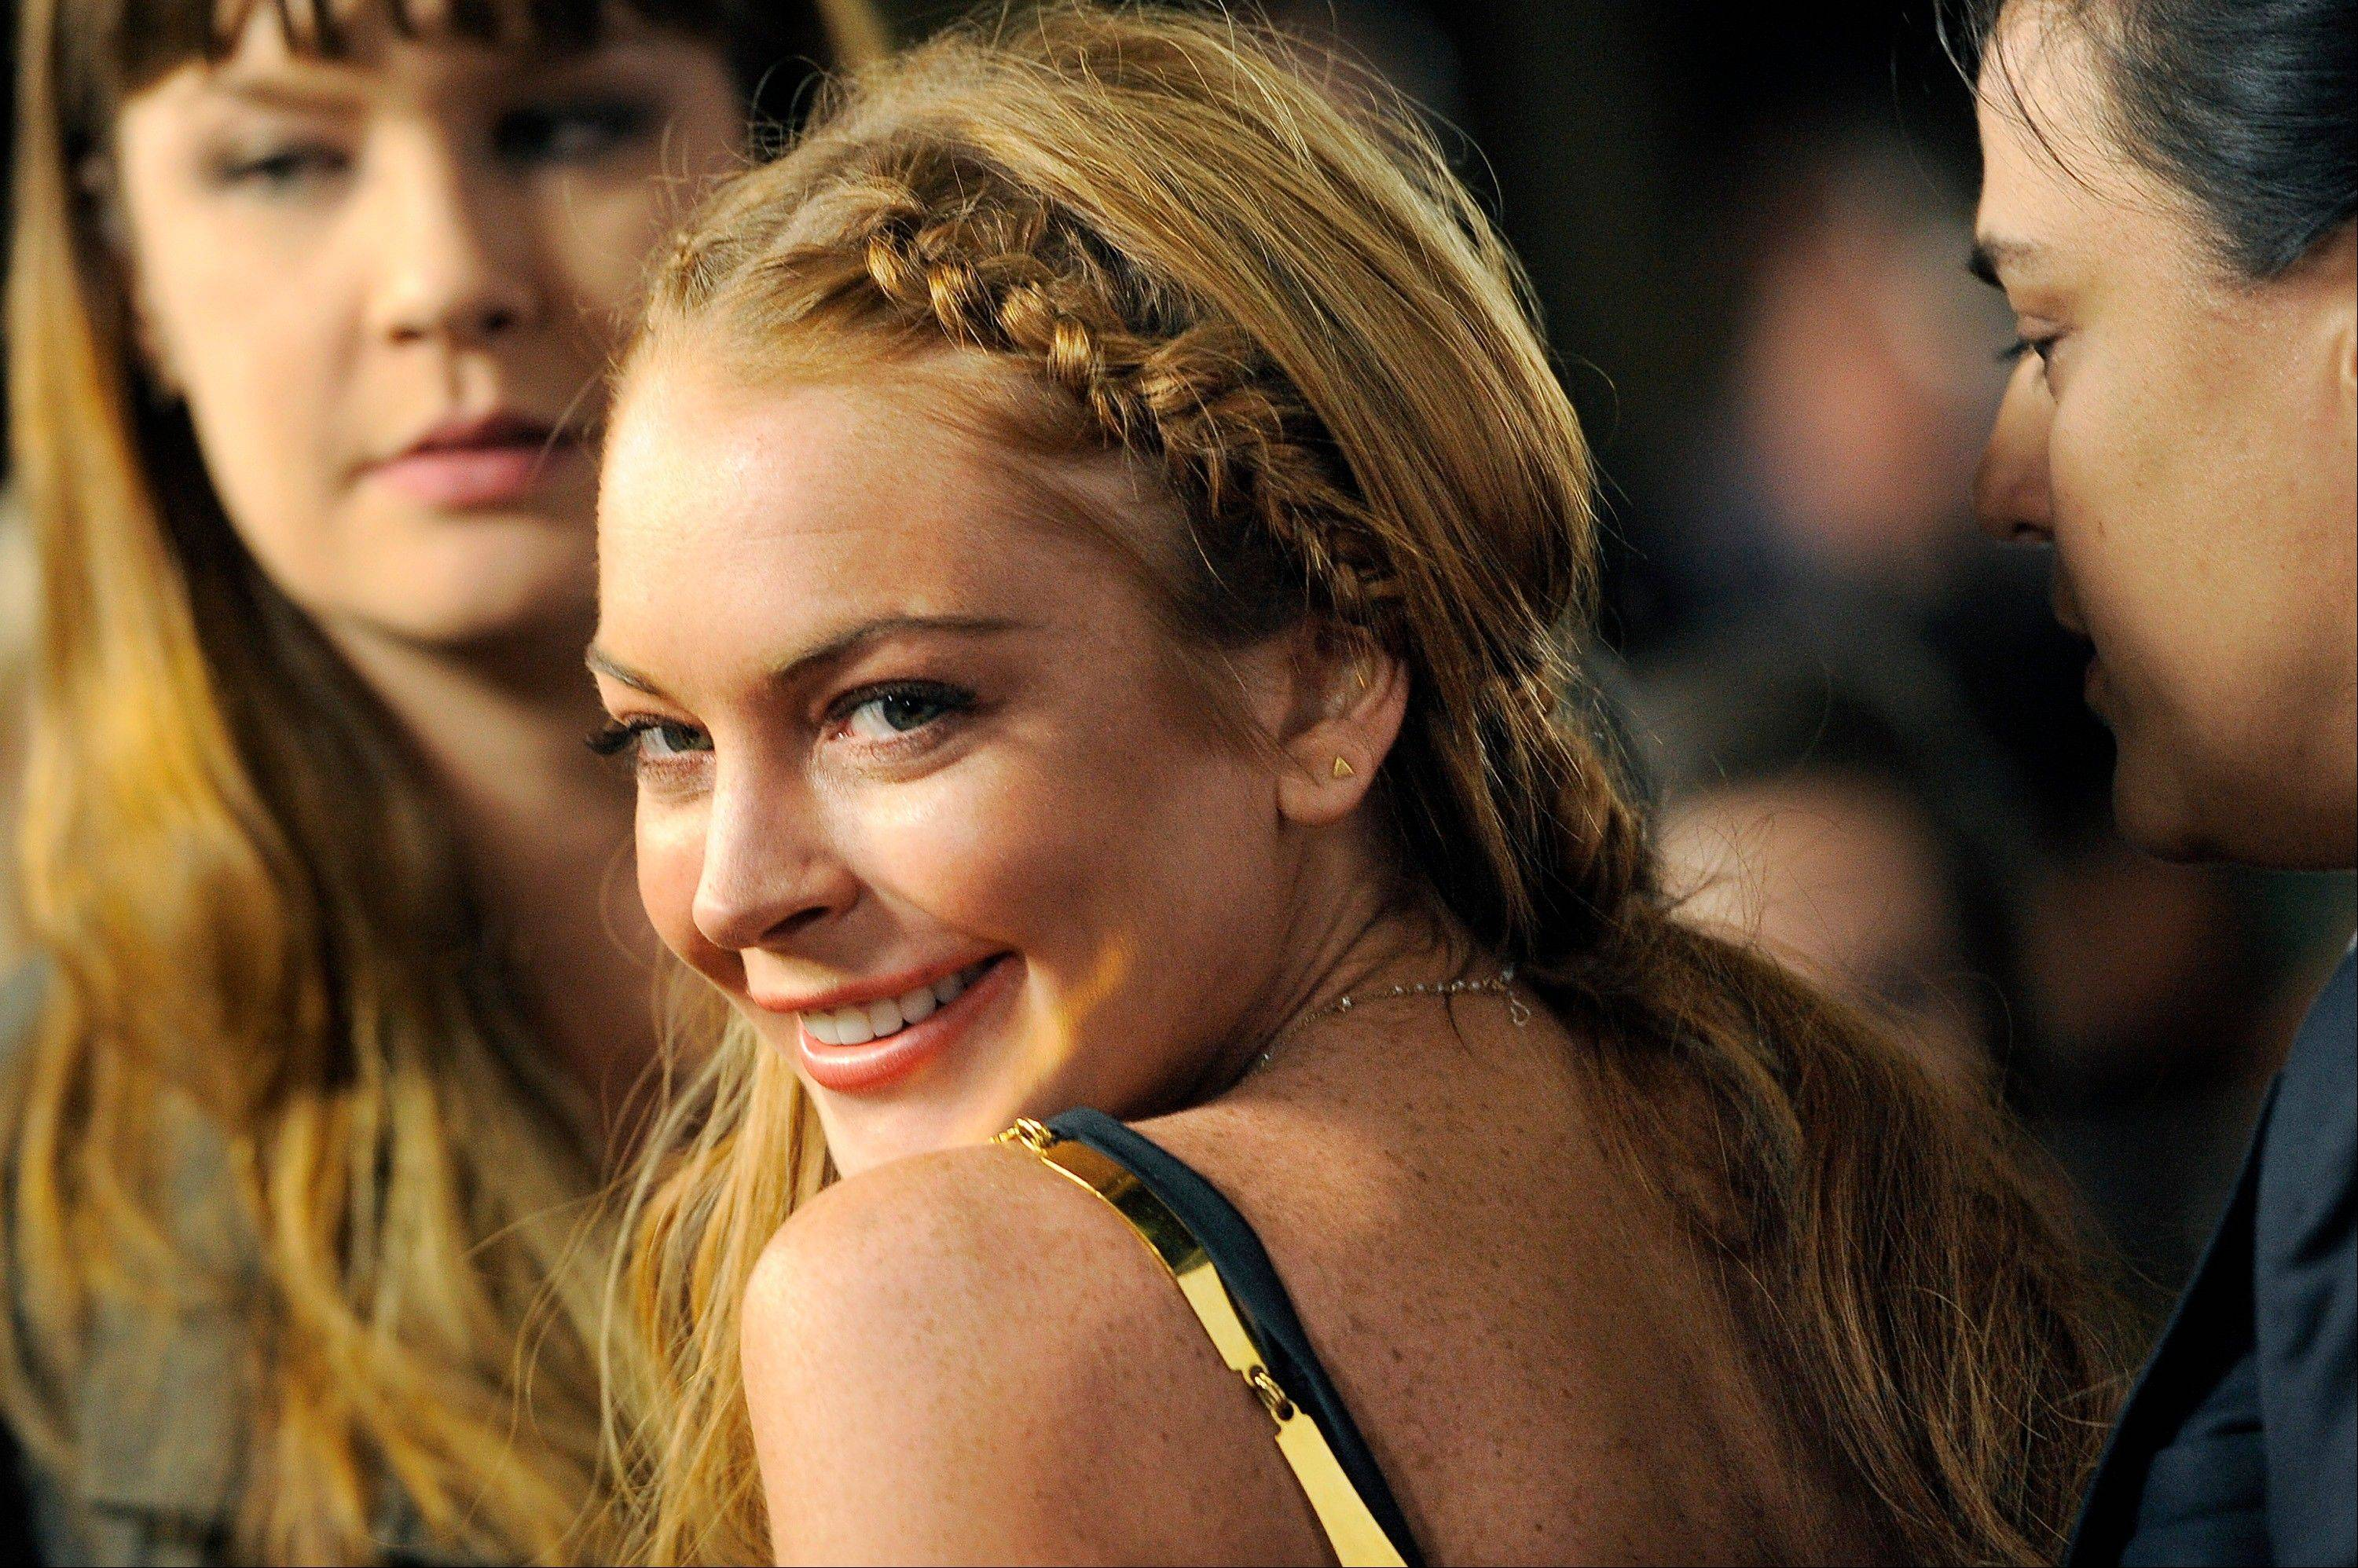 Actress Lindsay Lohan�s lawyer Mark Jay Heller has told a judge at a hearing that Lohan had checked into a rehab facility per a judge�s orders.